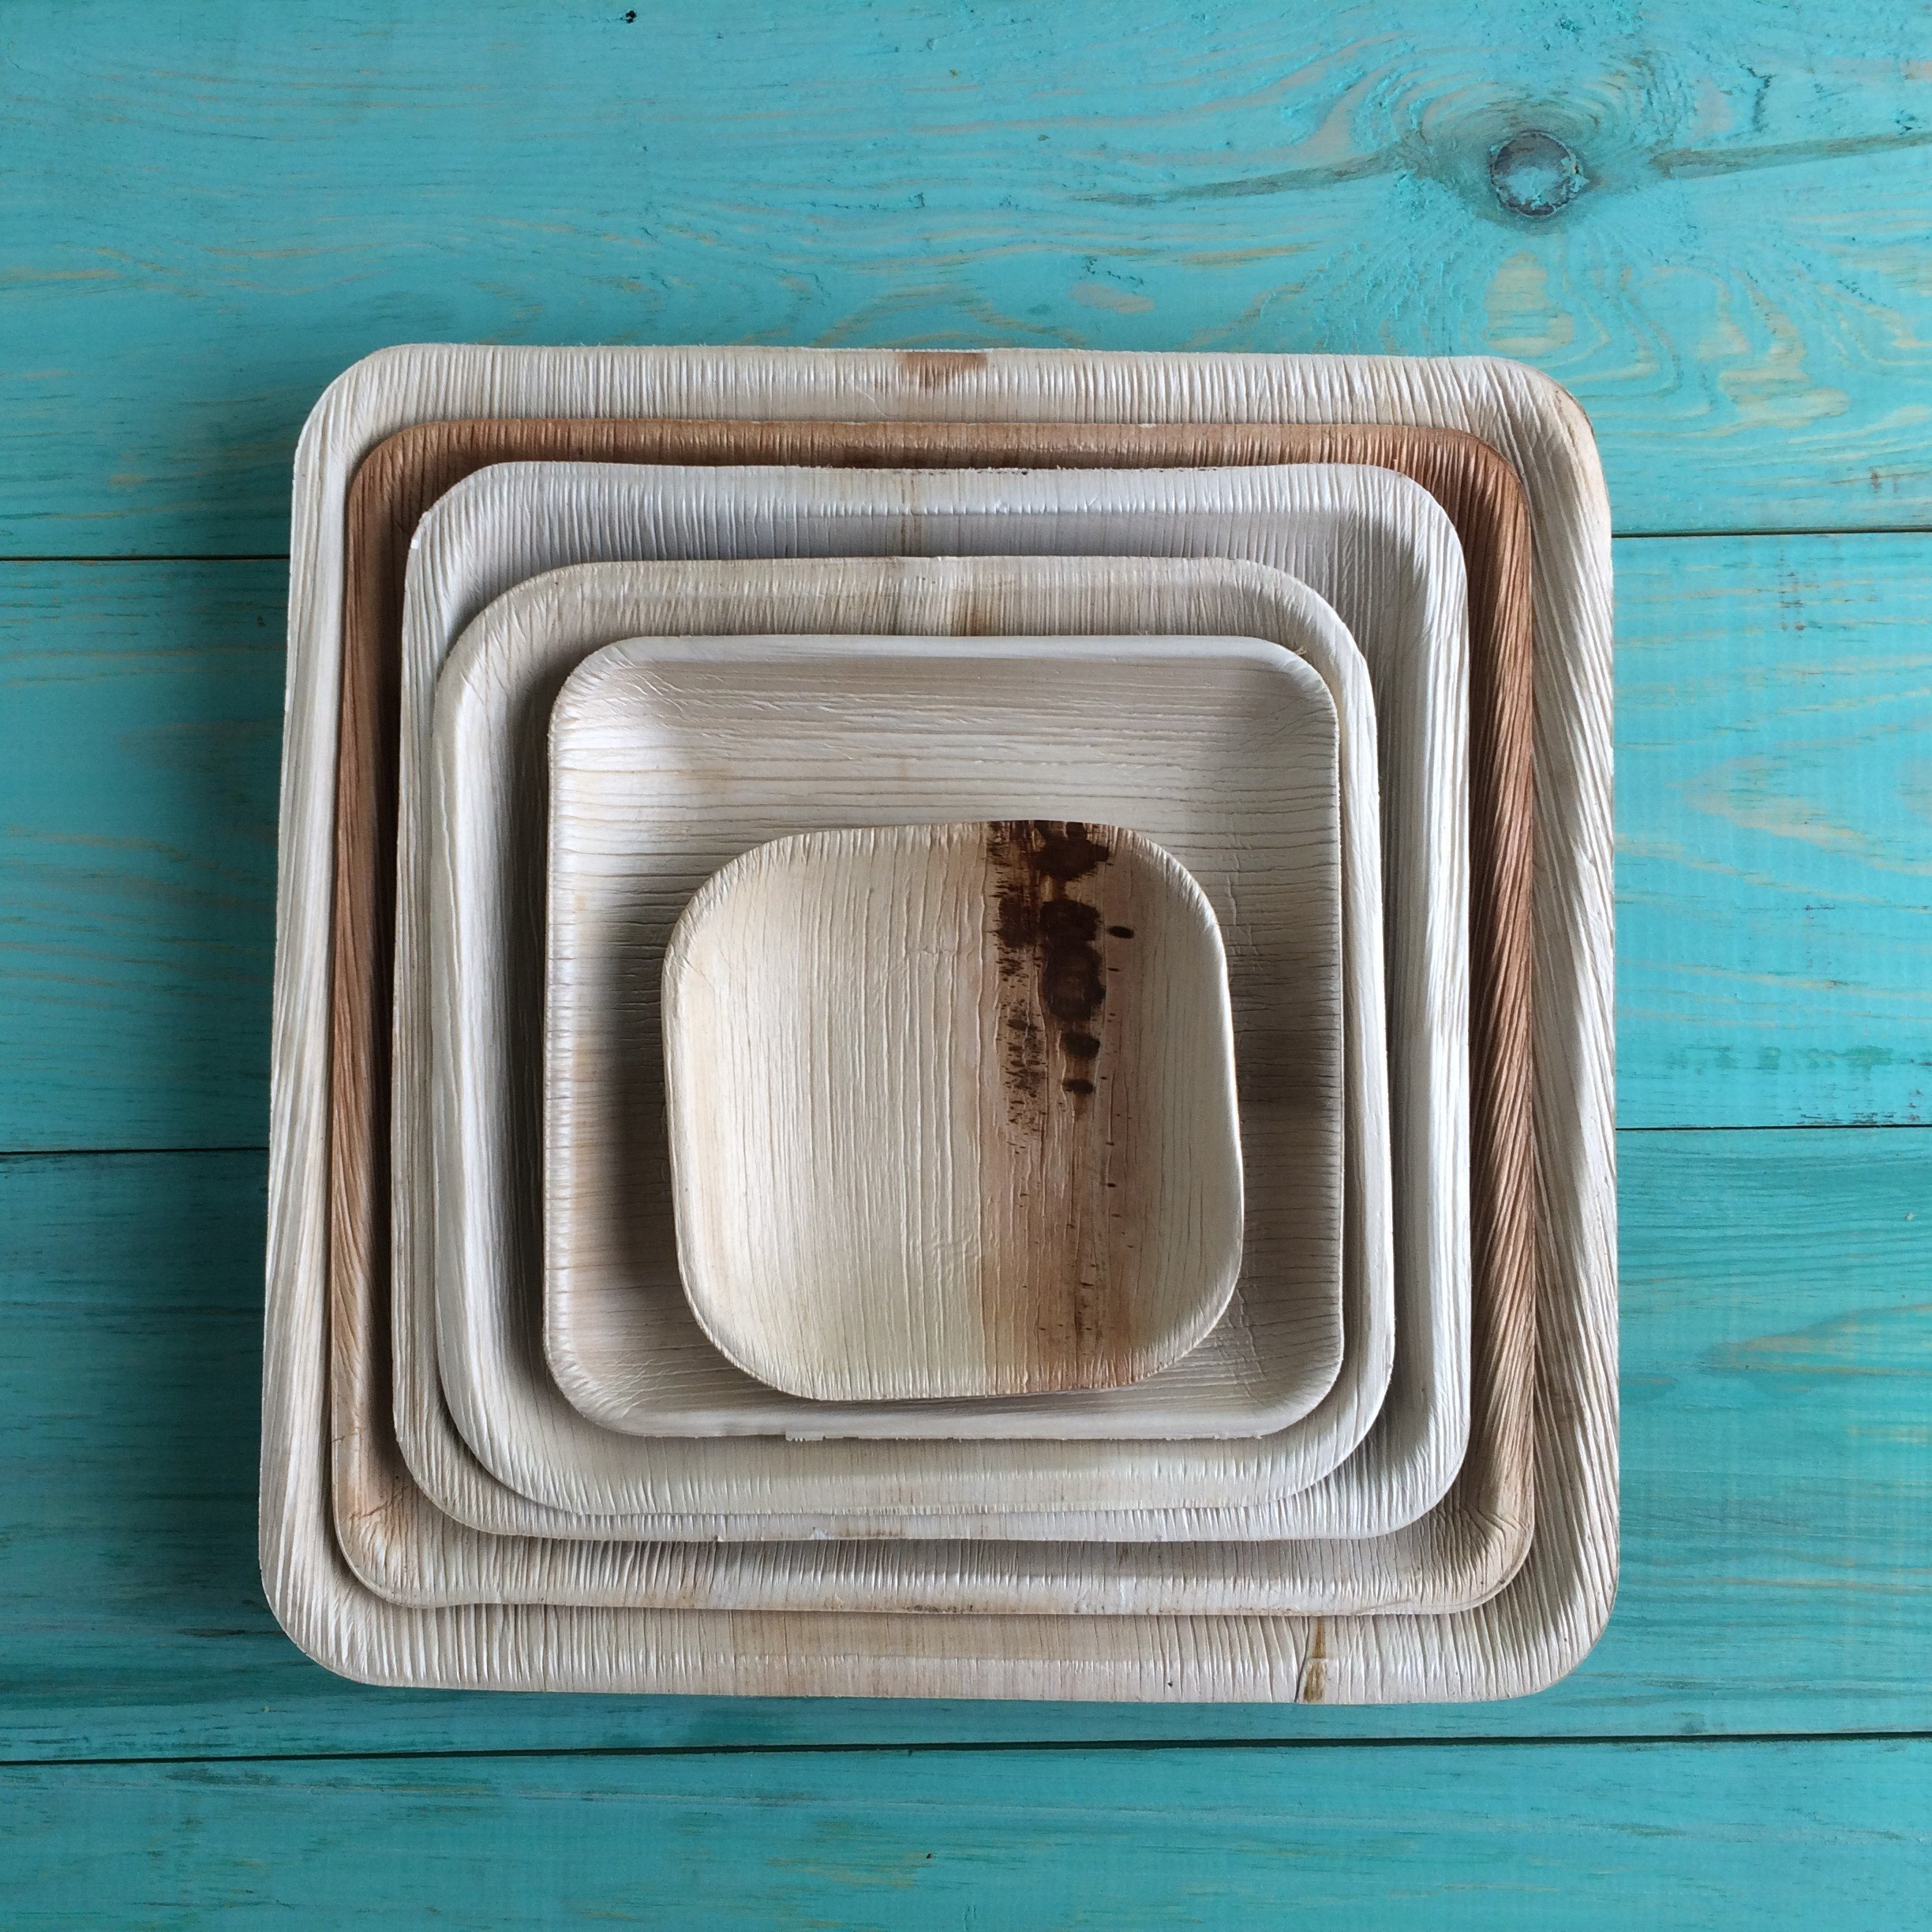 Disposable Plates Made of Palm Leaf: Heavy Duty & Eco - Better Than Wood & Bamboo- Square Shape (6'' Square Plate - 25 Pcs, Peach to tan) by Adaaya (Image #9)